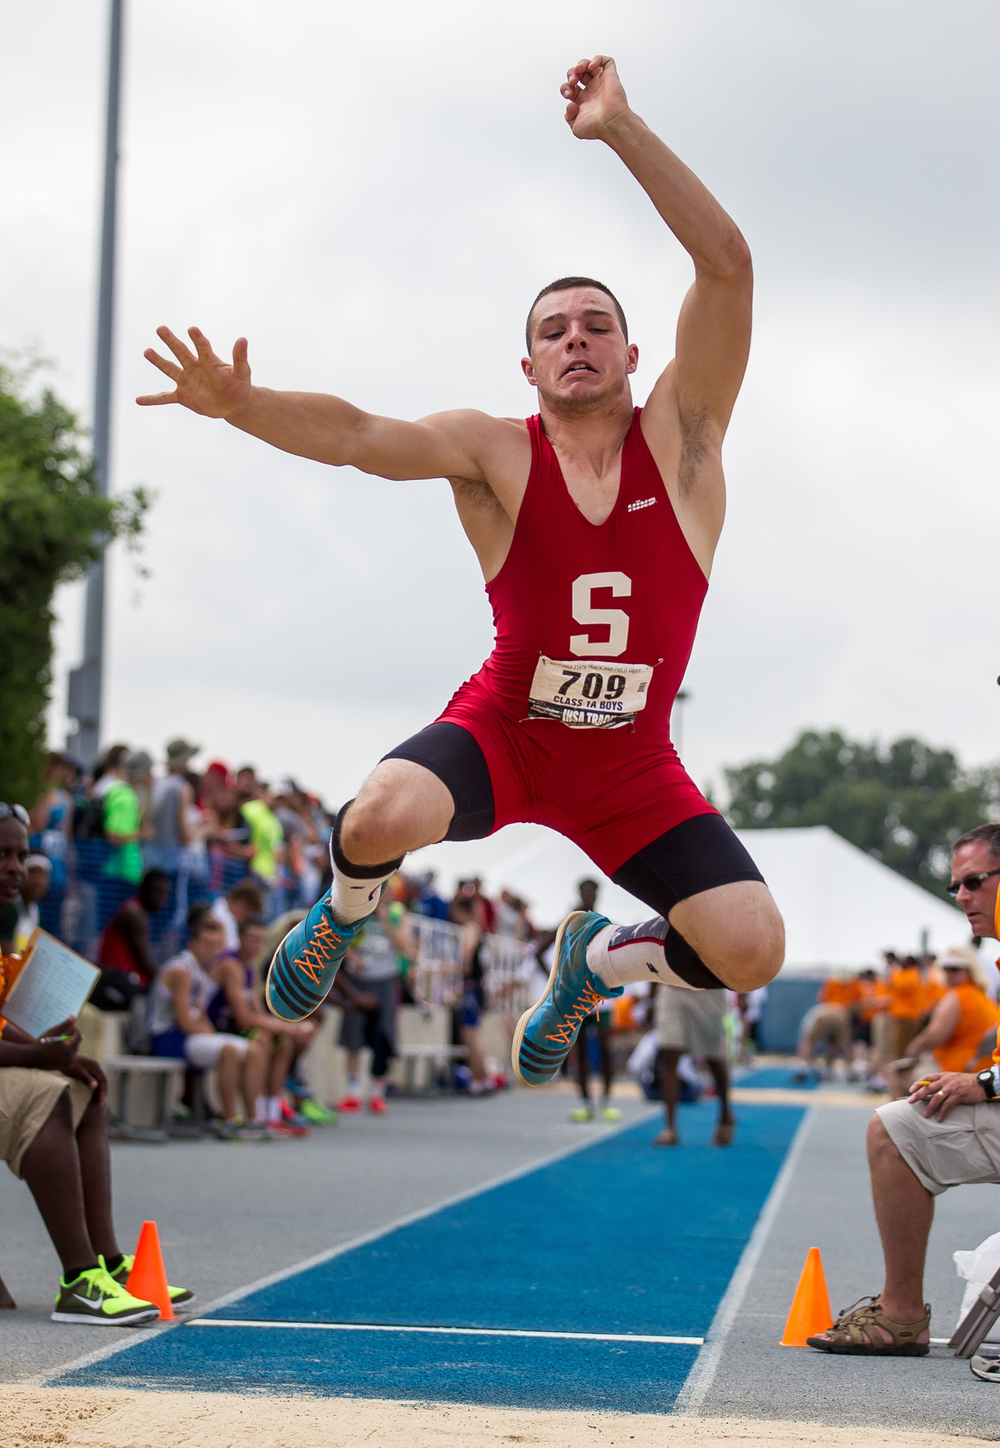 Staunton's Marcus Sitko wins the Class 1A Long Jump with a jump of 23-02.25 during the IHSA Boys Track and Field State Finals at O'Brien Stadium, Saturday, May 30, 2015, in Charleston, Ill. Justin L. Fowler/The State Journal-Register